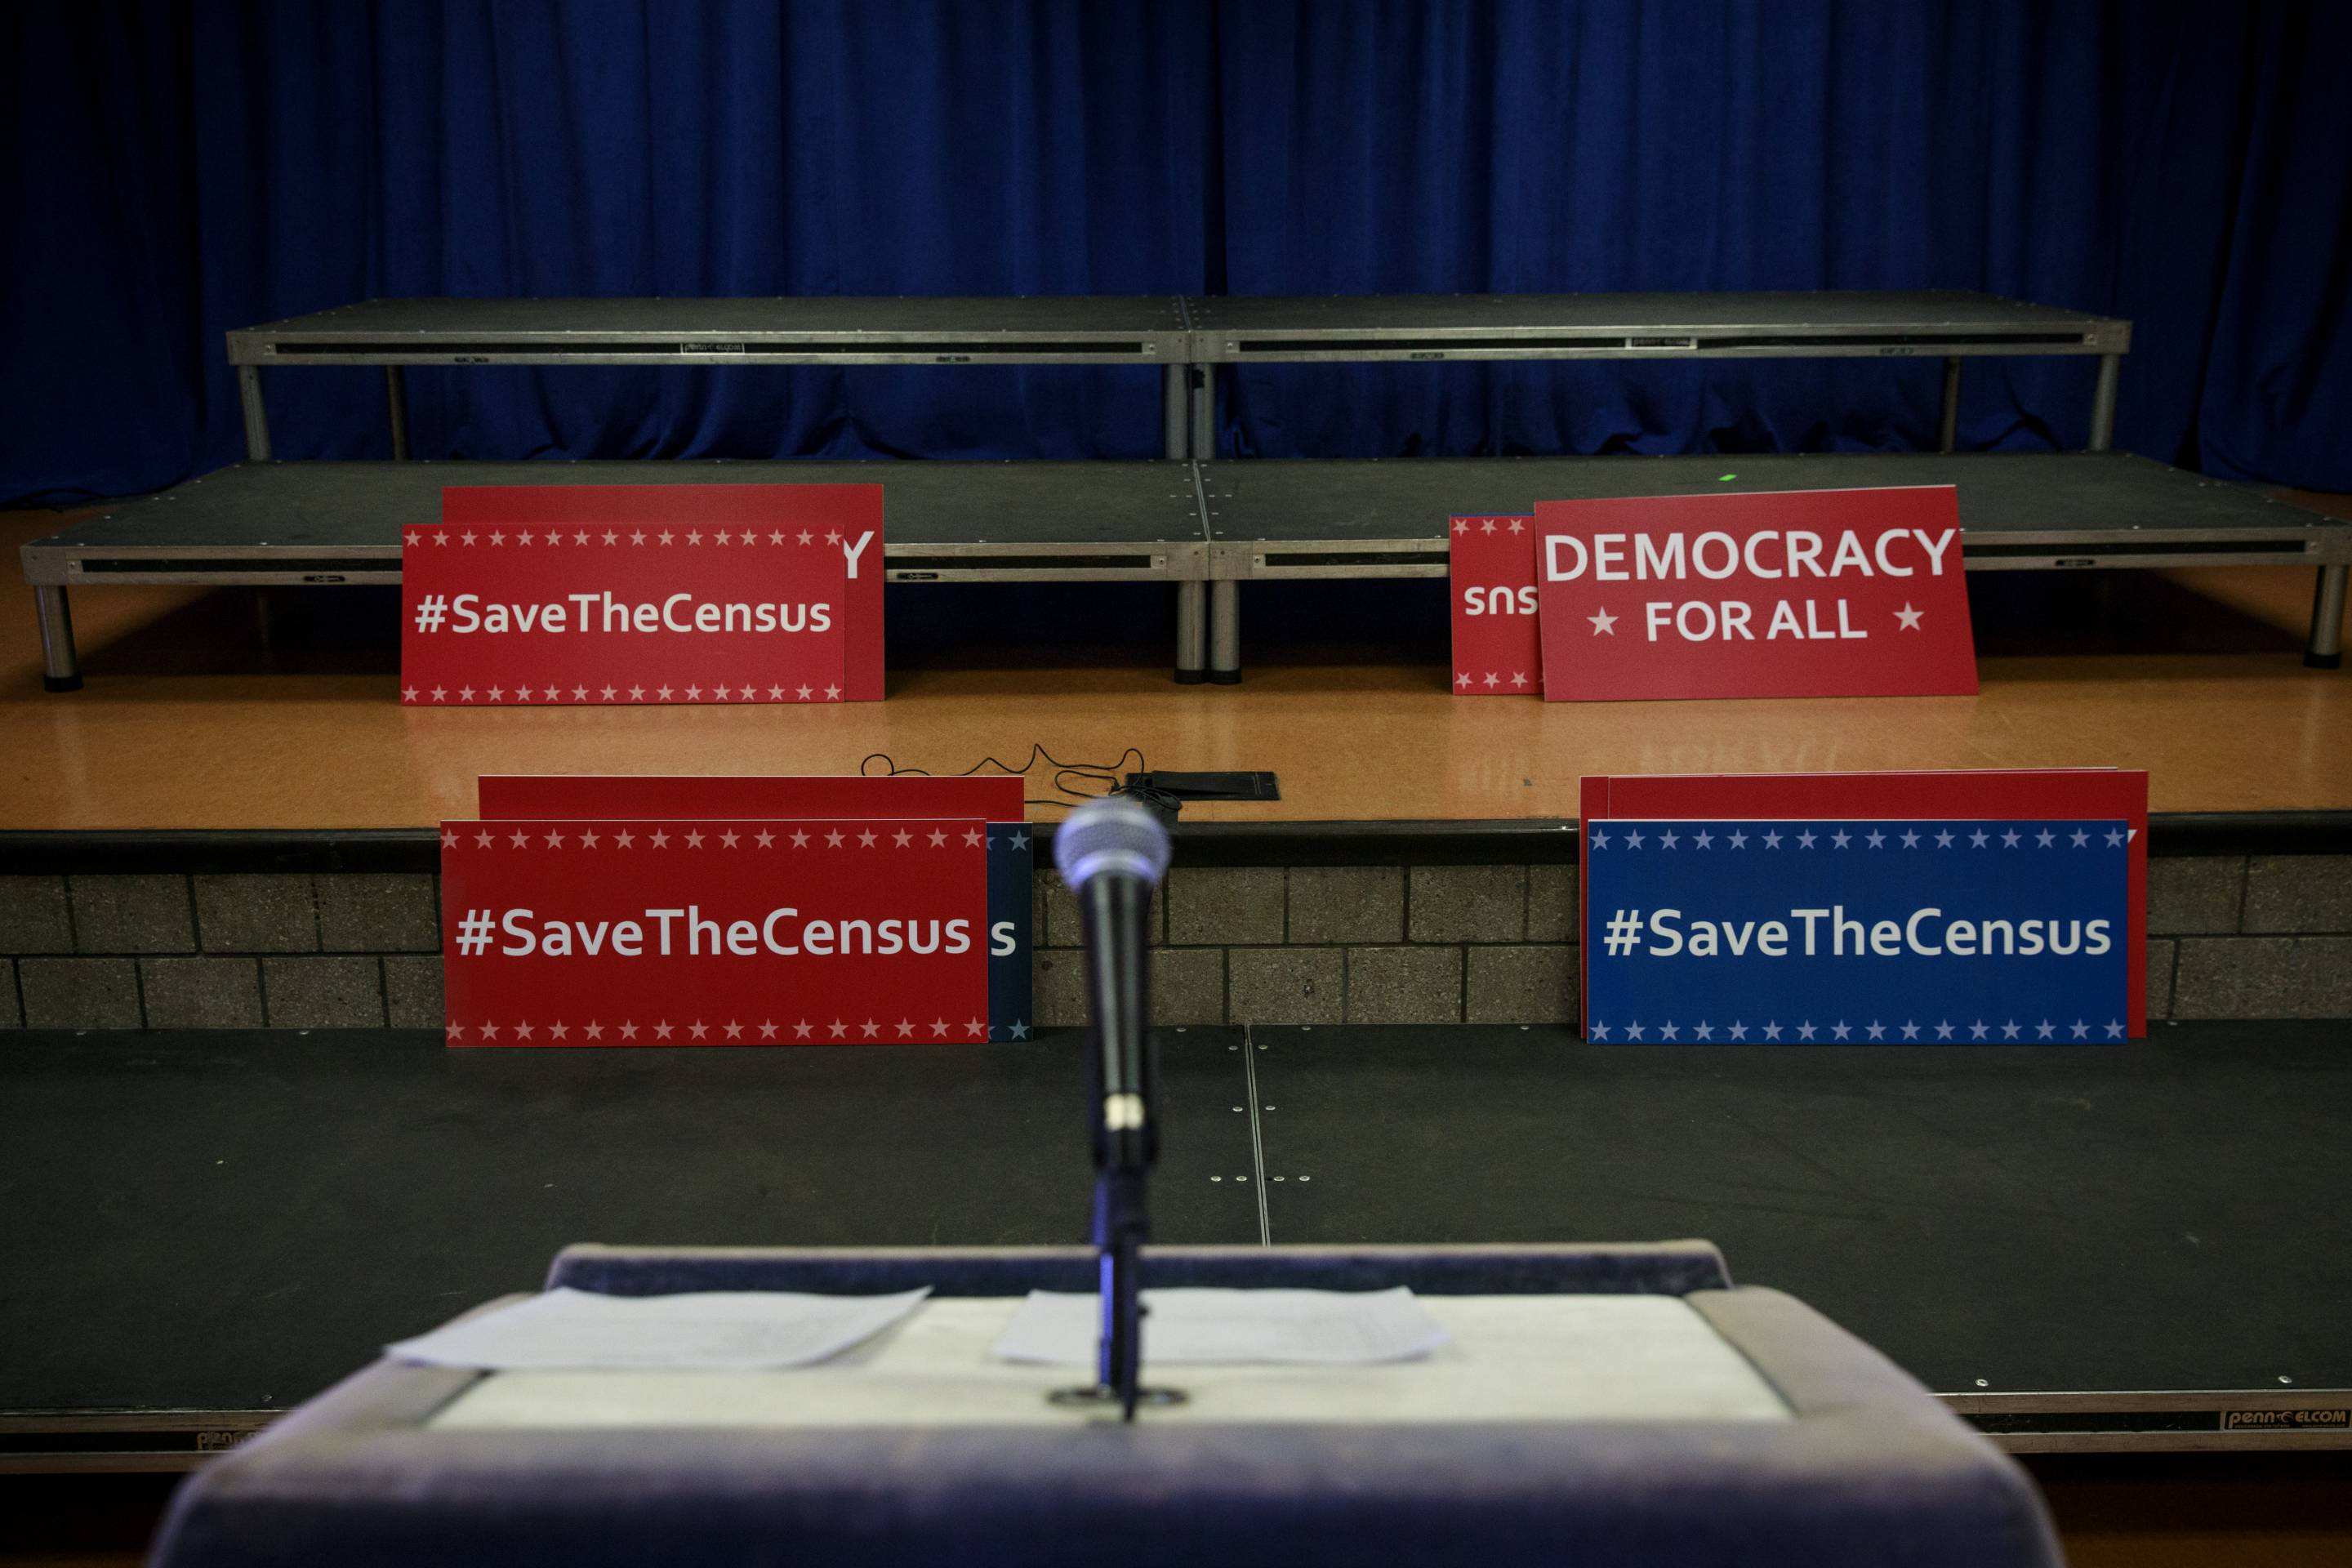 NY Attorney General Schneiderman Files Suit Against Trump Administration Over Census